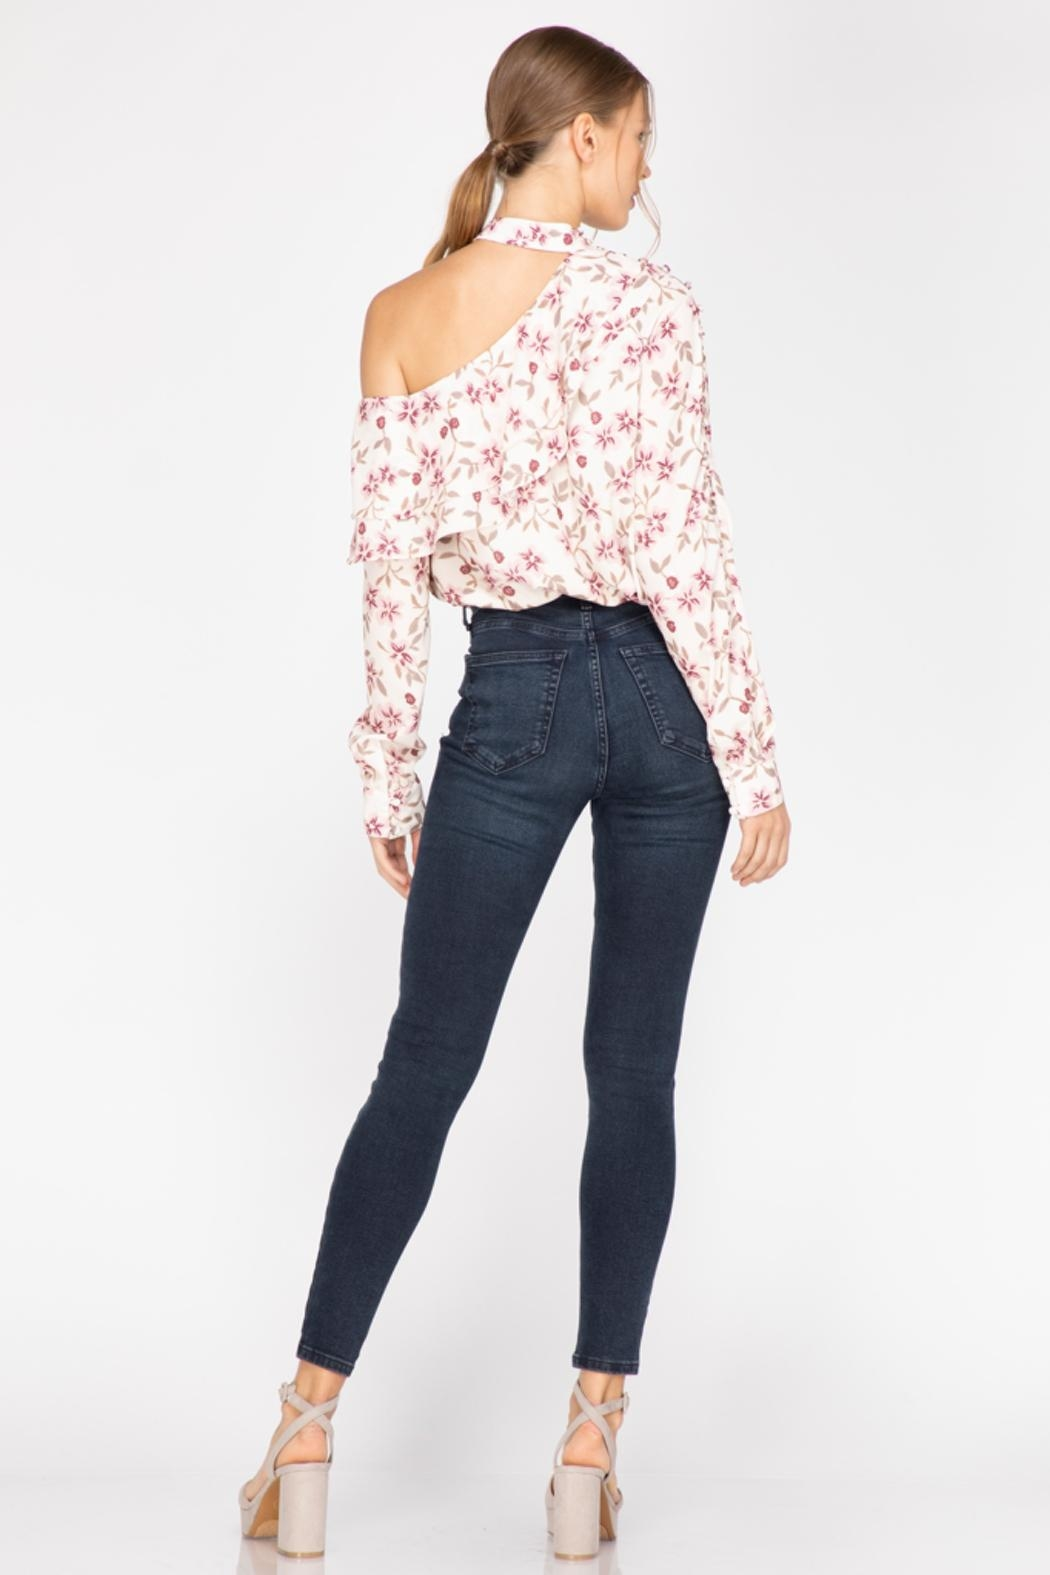 Adelyn Rae Patyon One-Shoulder Blouse - Side Cropped Image